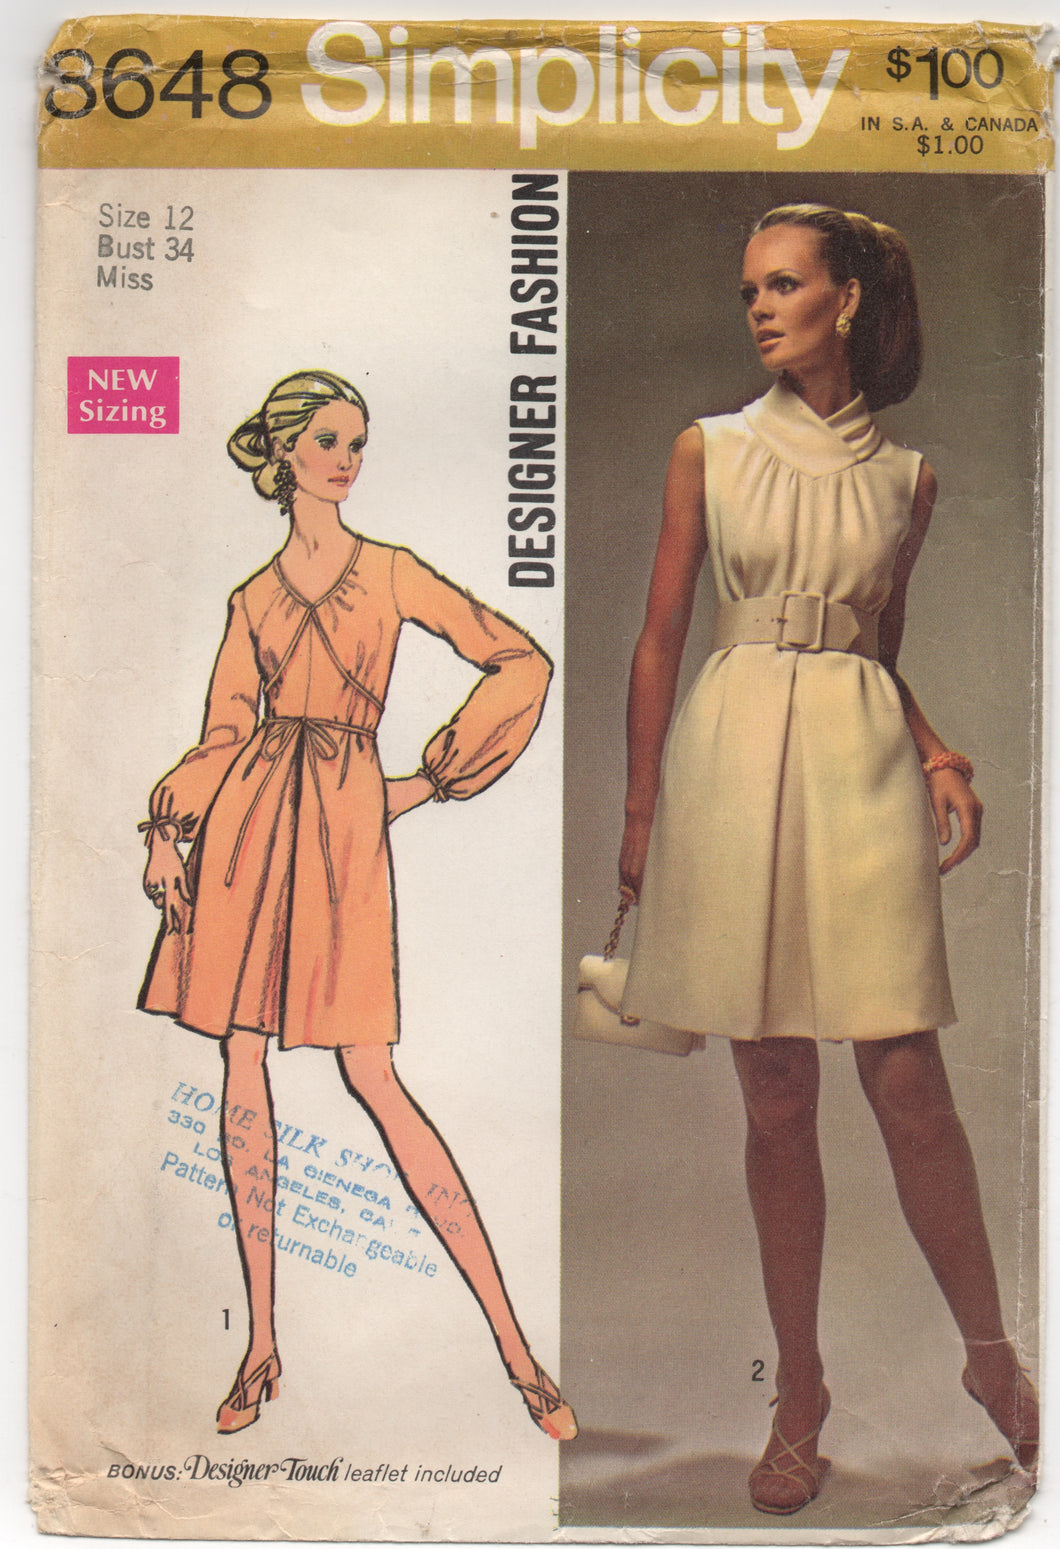 1960's Simplicity Designer One Piece Dress with Surplice Collar Pattern - Bust 34